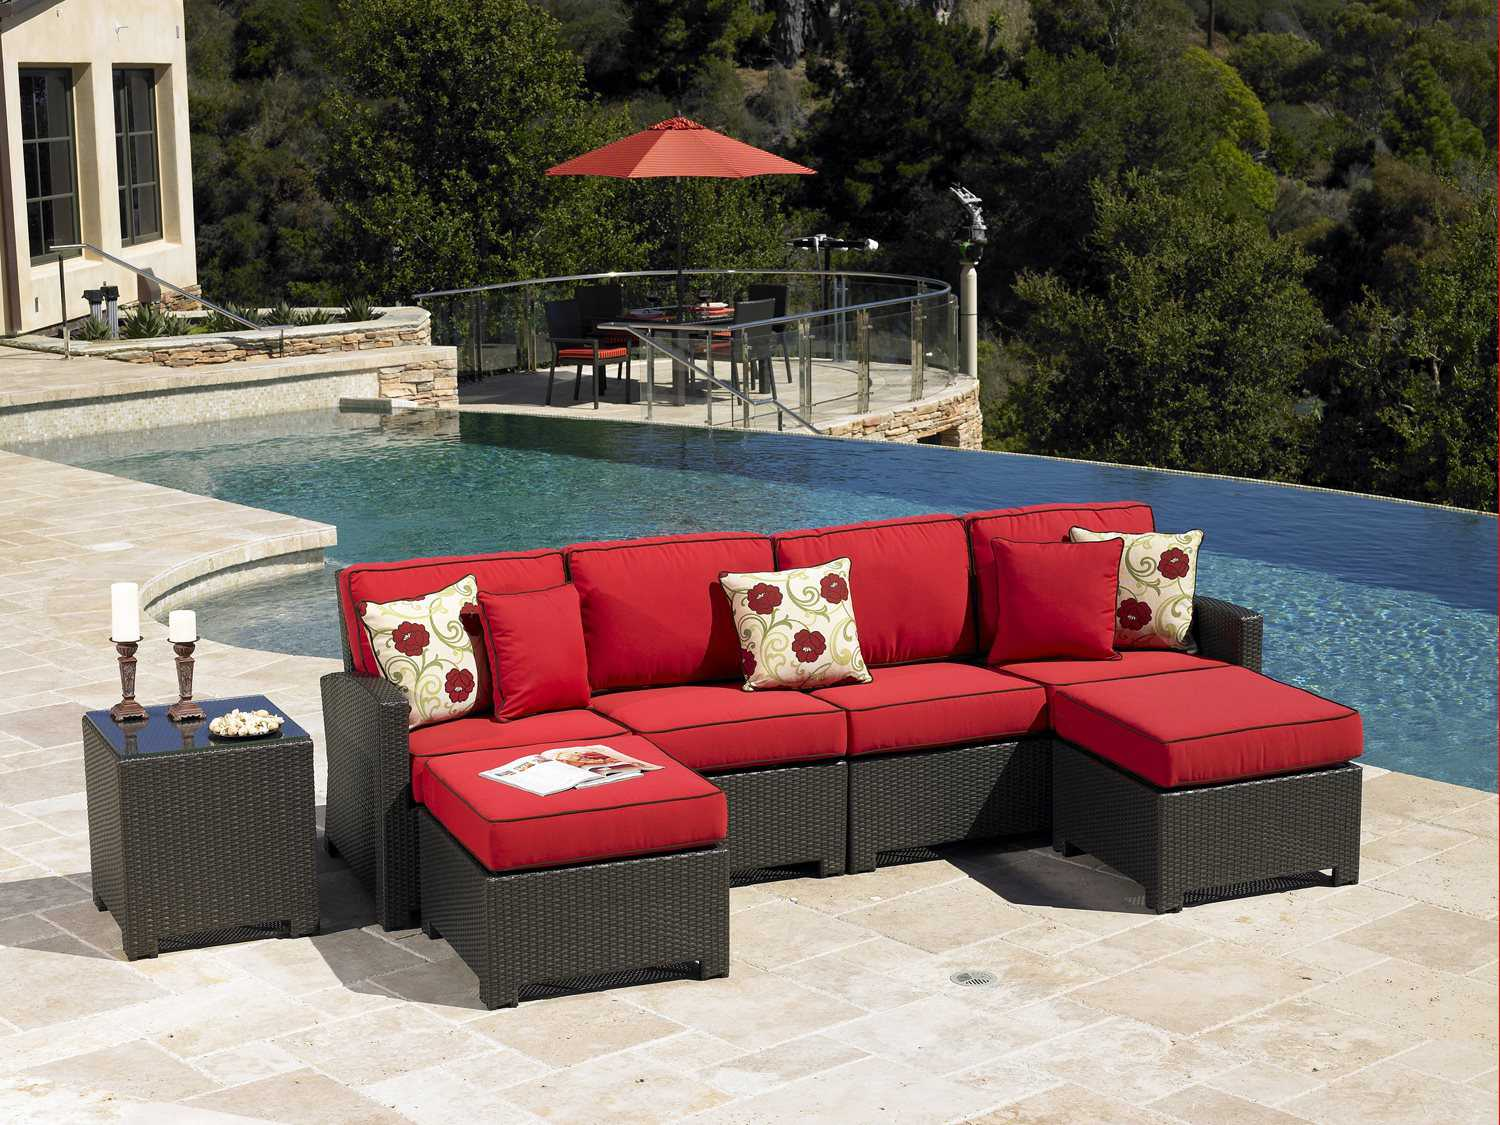 Forever patio barbados wicker sectional set ncbarlngeset4 for Agio international barbados chaise lounge